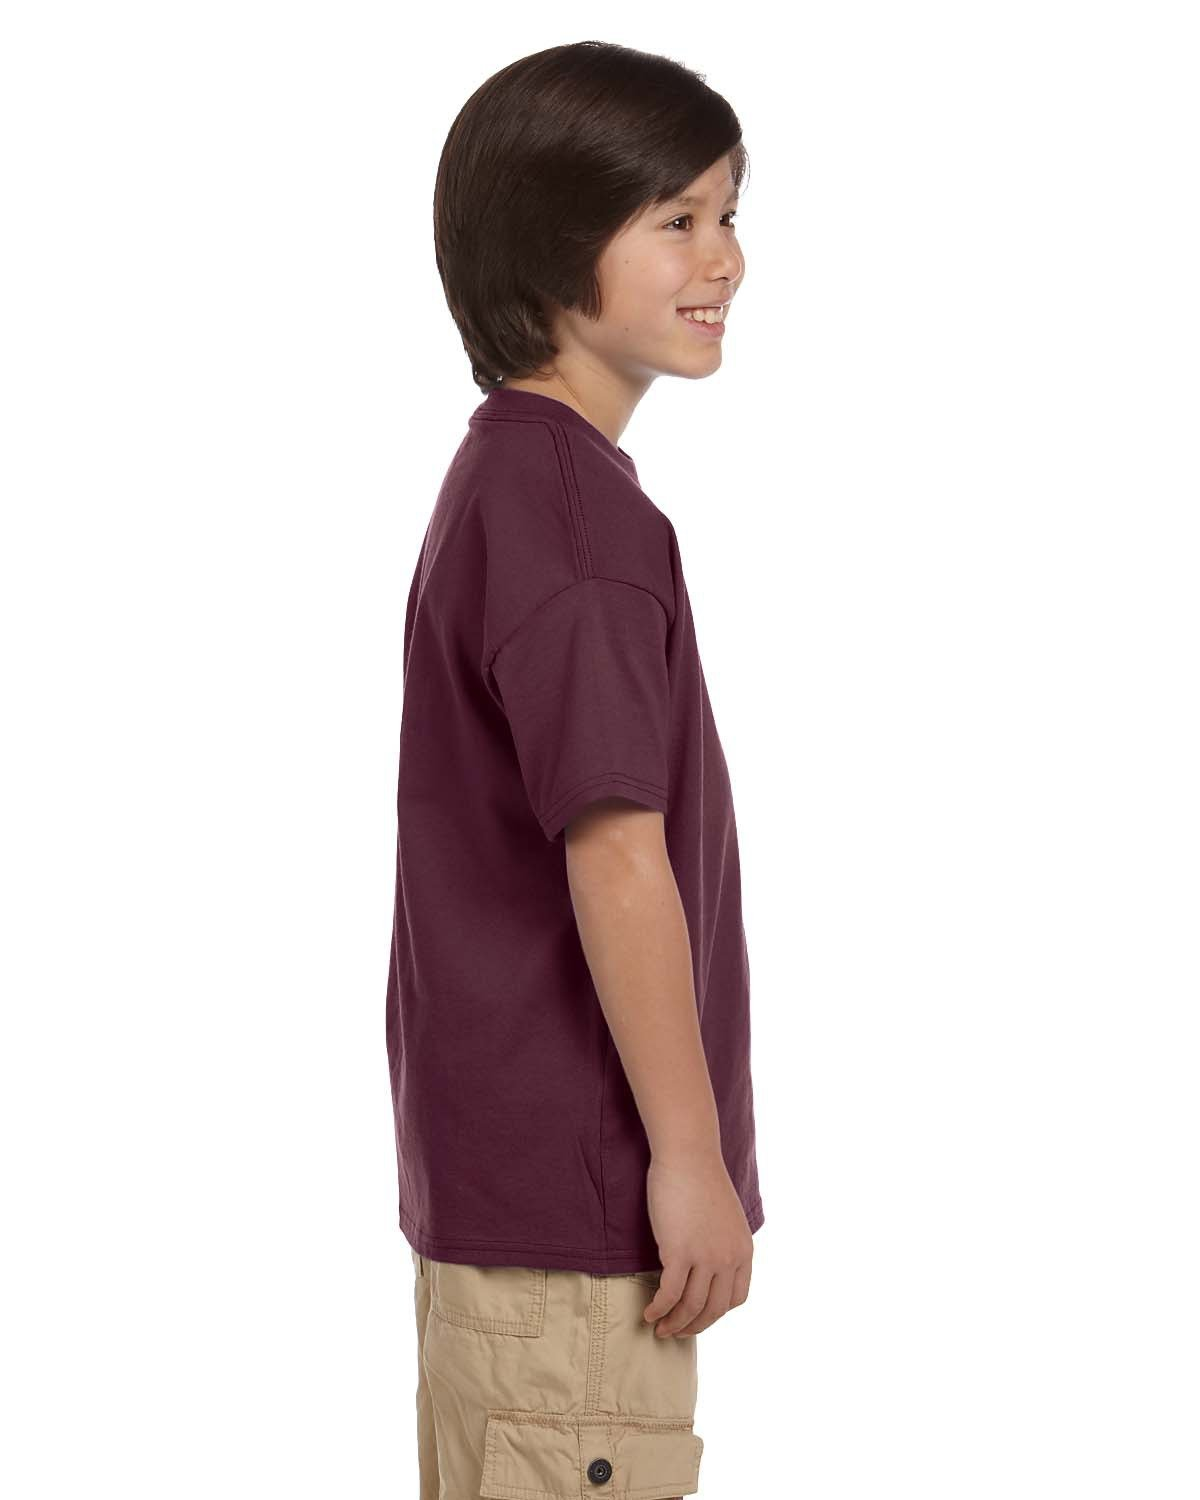 f7452662 T435 Champion Youth 6.1 oz. Short-Sleeve T-Shirt. Touch to zoom. Color  Shown: maroon